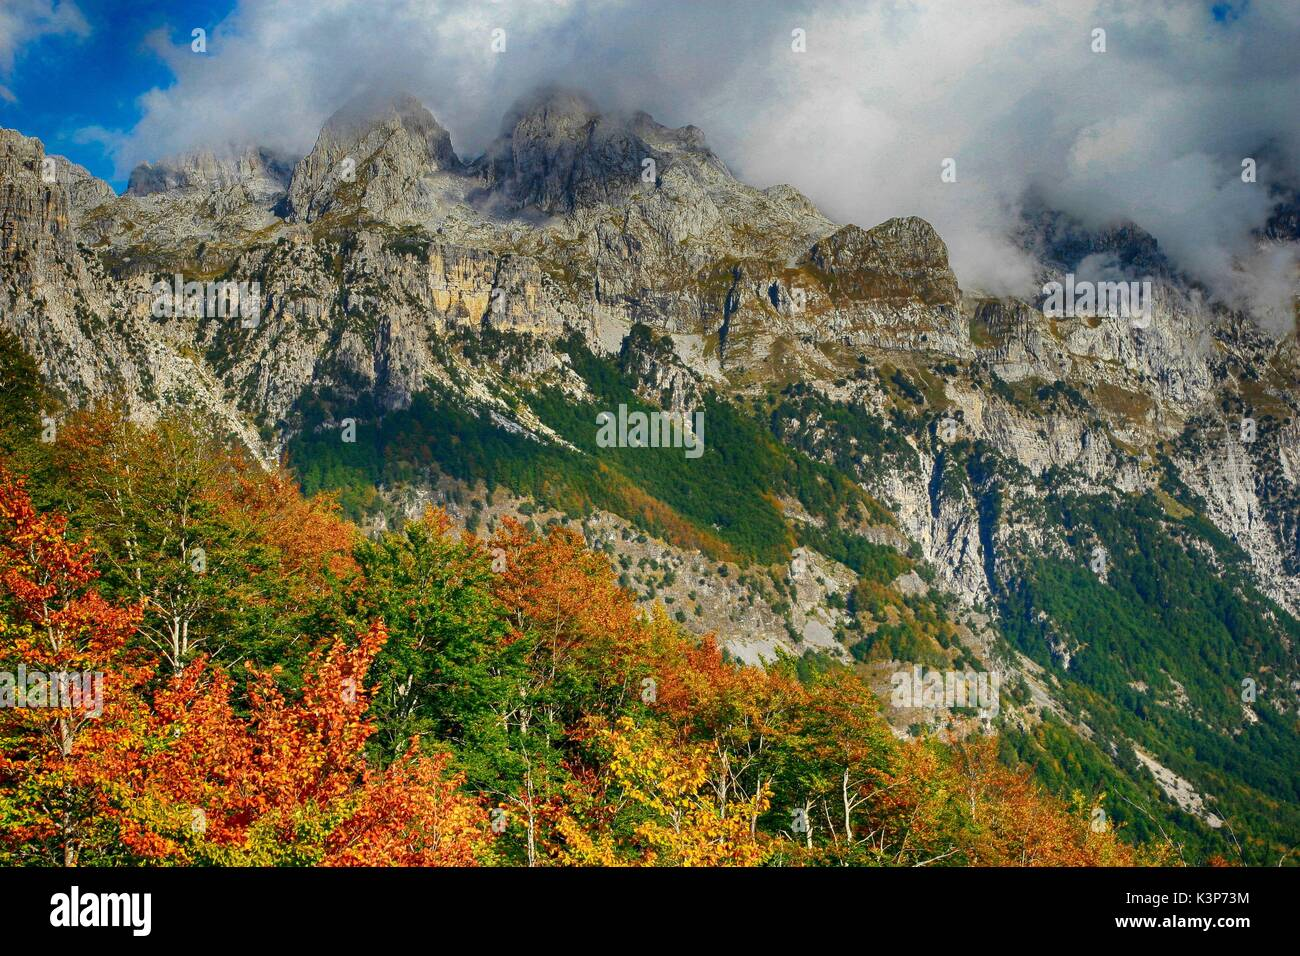 Prokletije / Bjeshket e Namuna / Accursed Mountains Mountains on the border between Montenegro, Albania and Kosovo Stock Photo